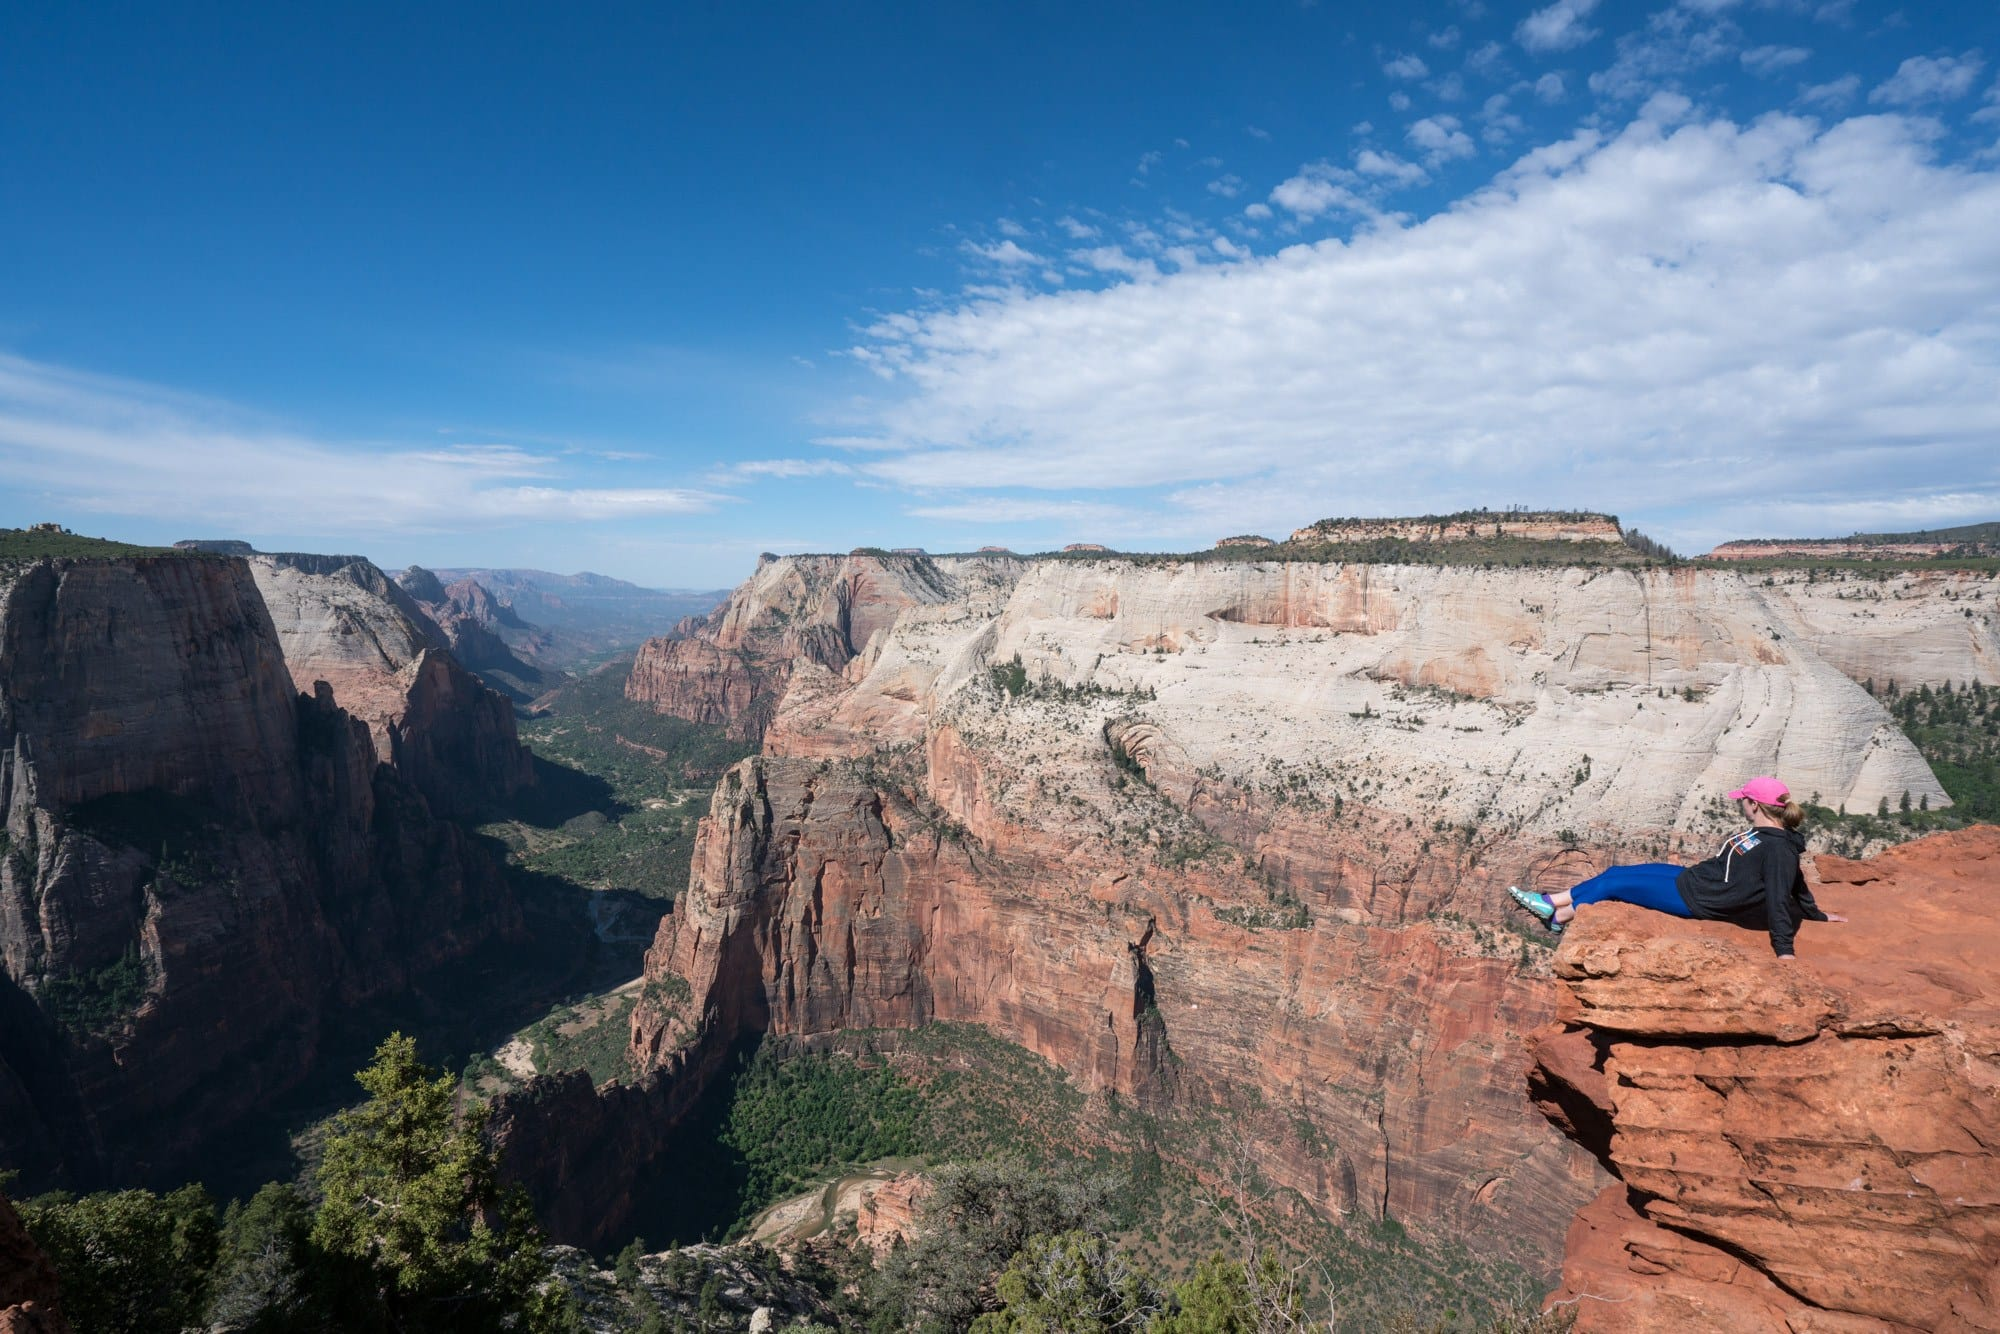 Southern Utah National Parks Hiking Group Tour with Arizona Outback Adventures